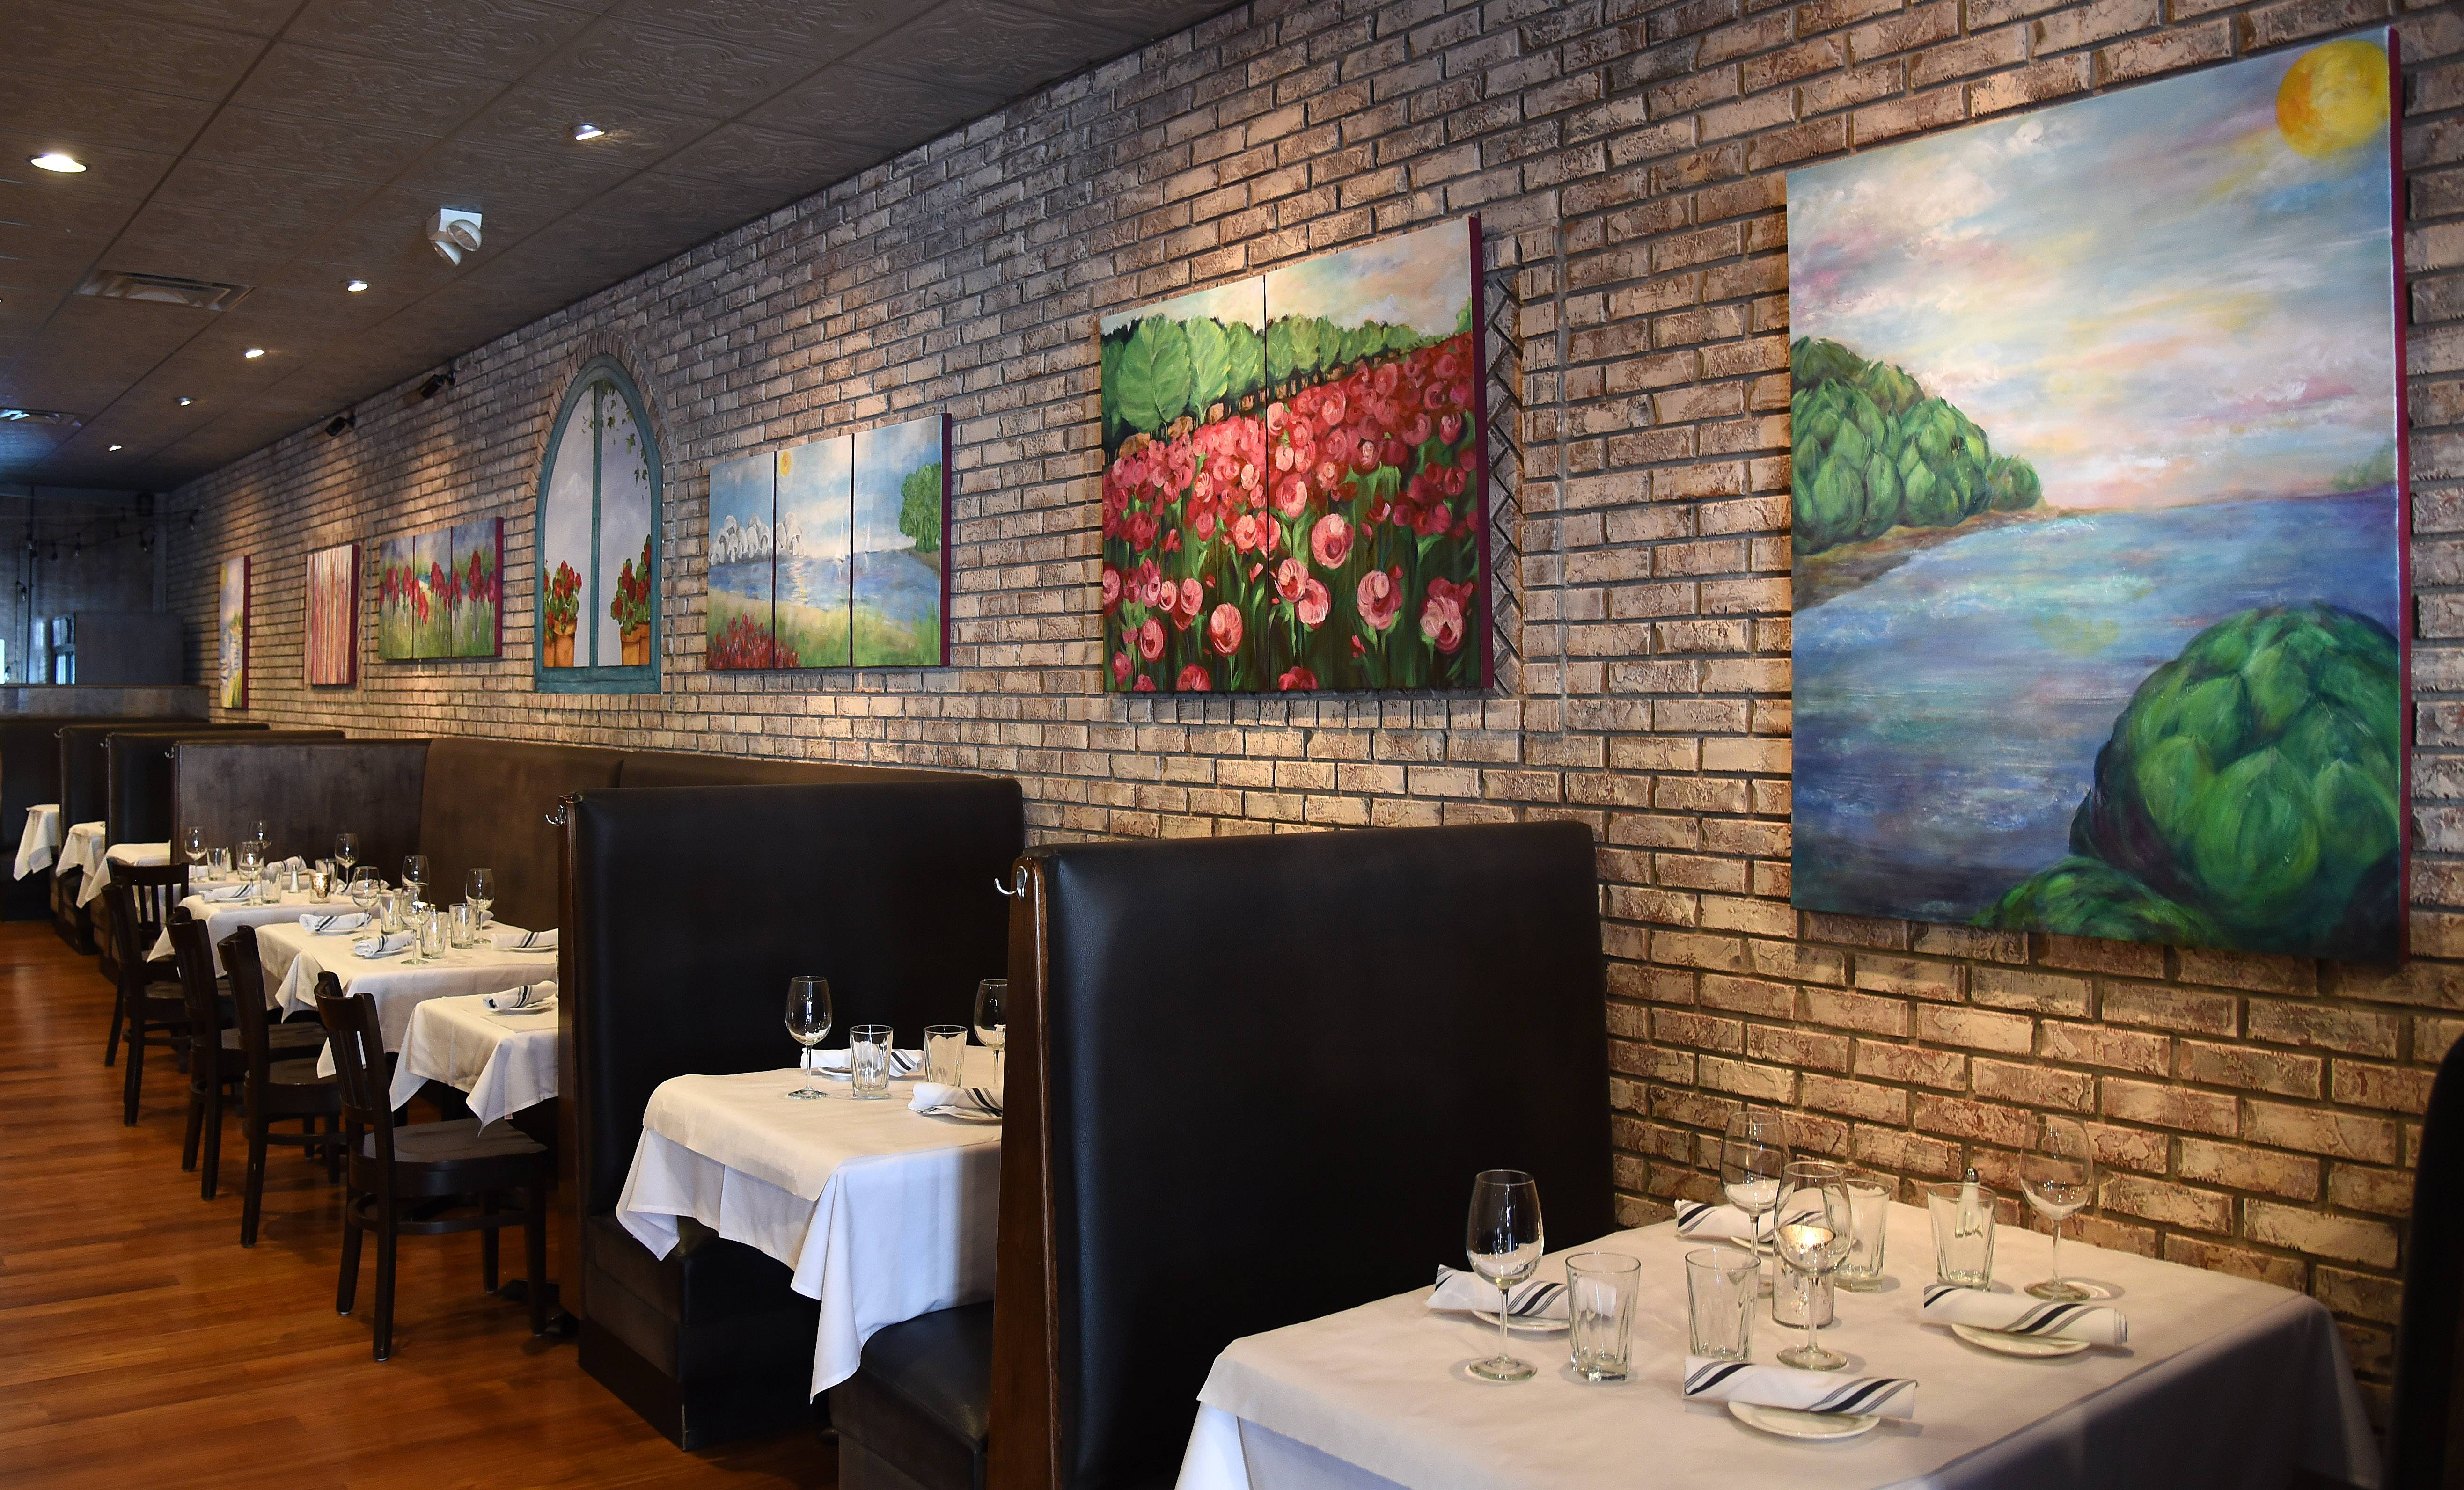 Artwork on the brick walls adds an air of sophistication to the dining room at Retro Bistro in Crystal Lake.